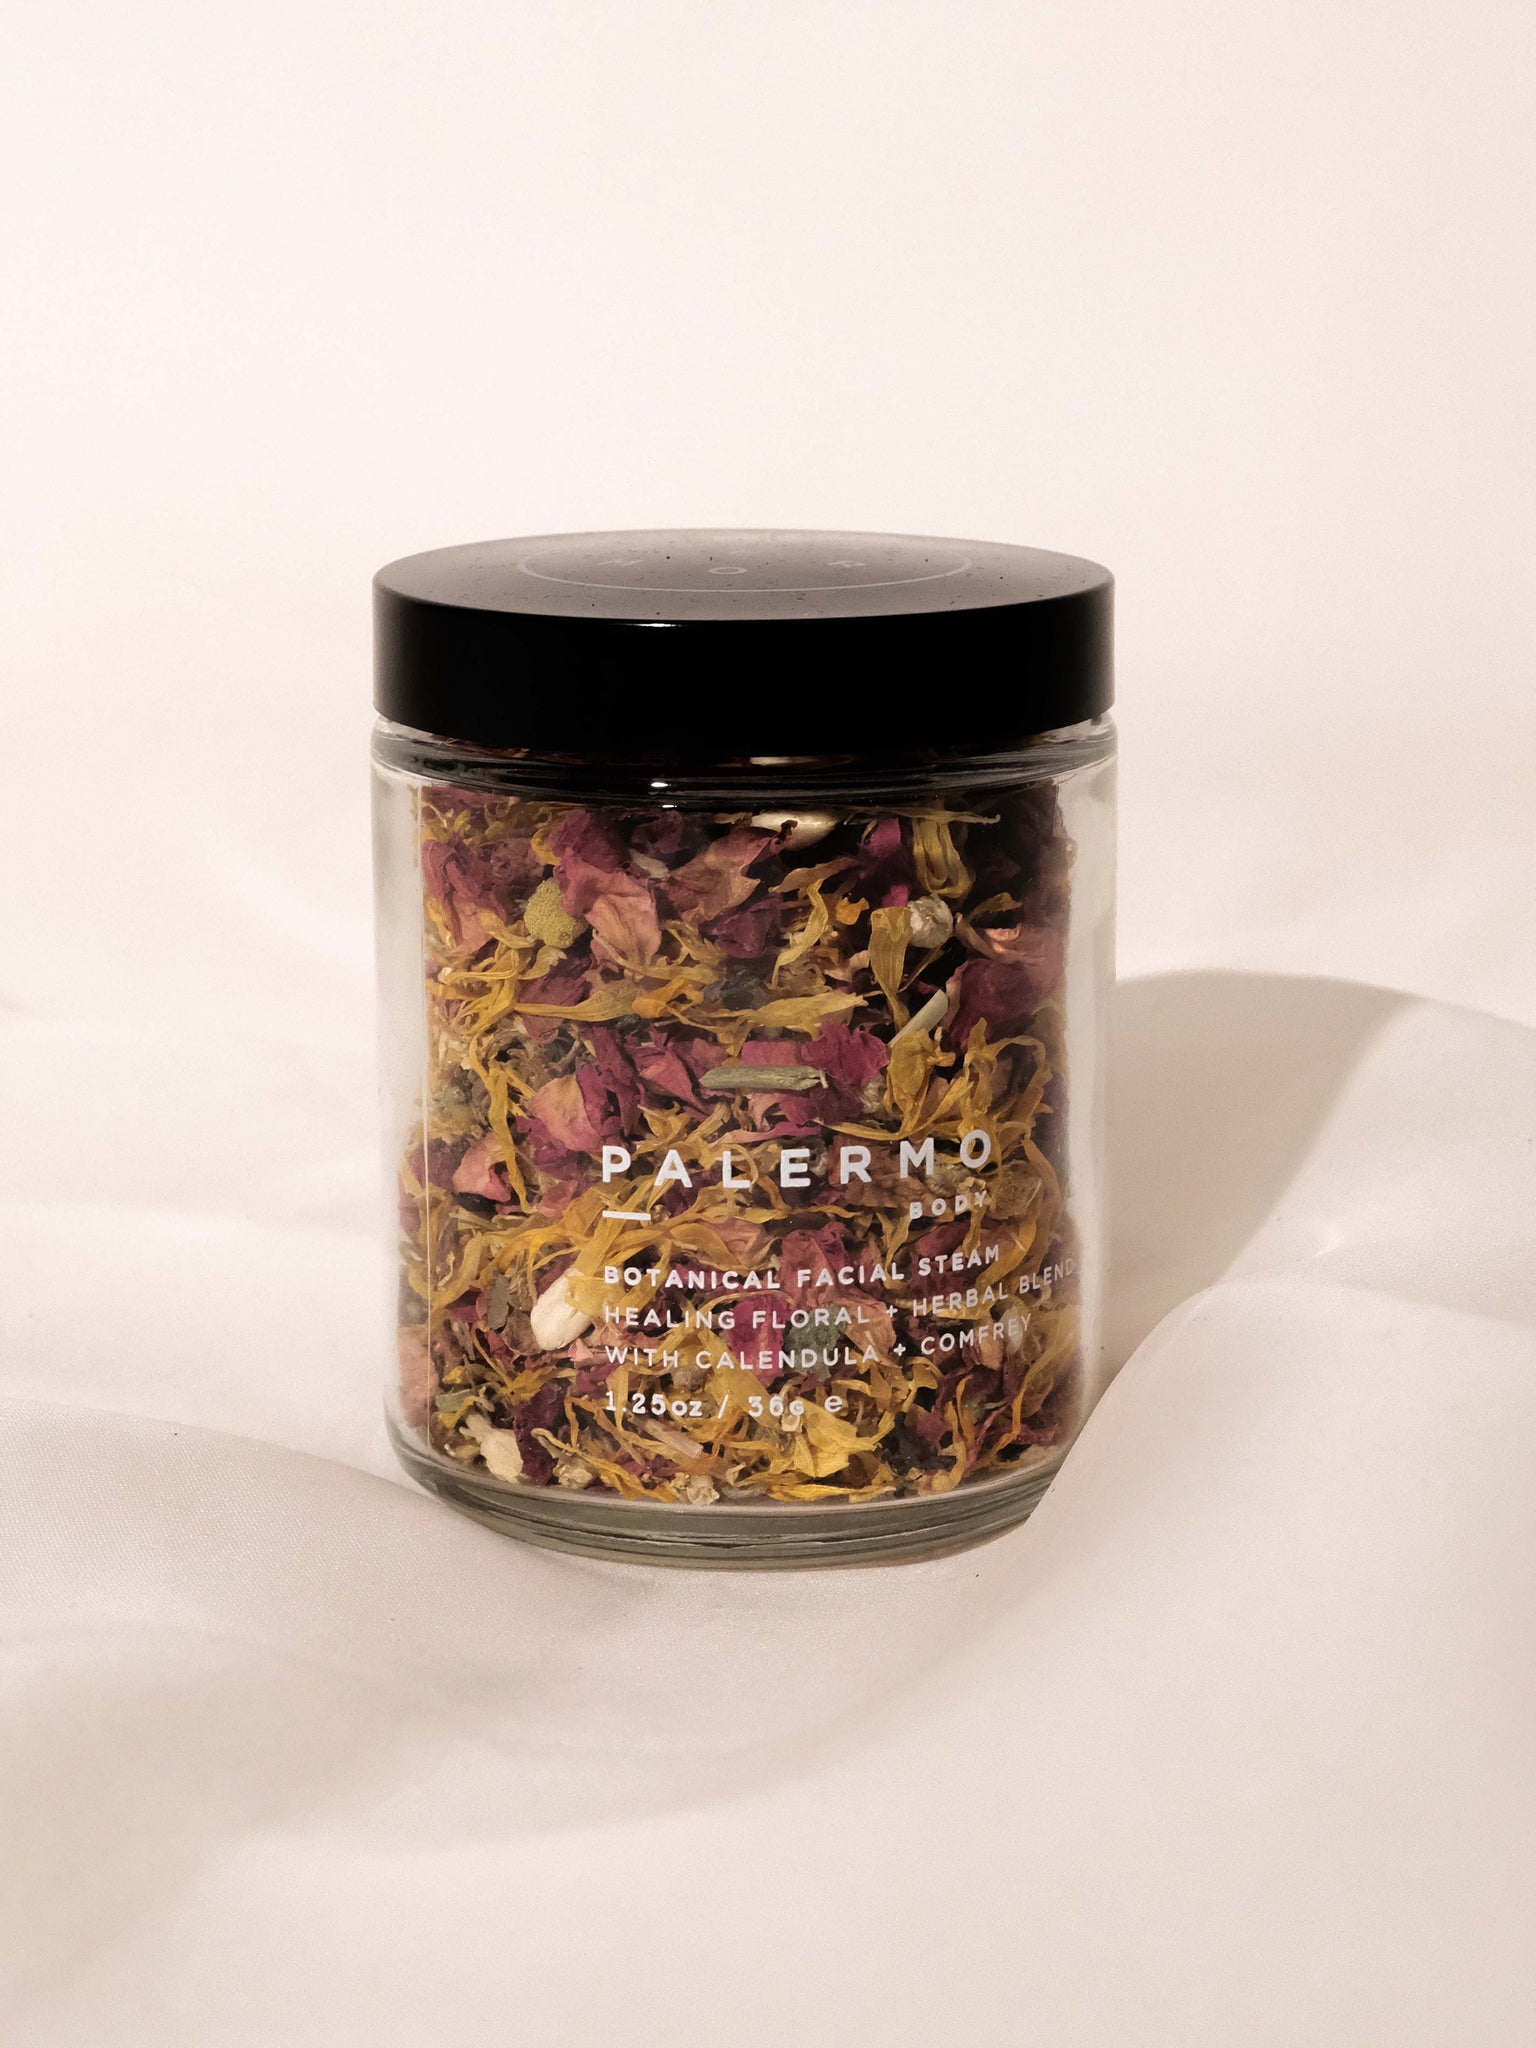 PALERMO BODY BOTANICAL FACIAL STEAM - CALENDULA + COMFREY